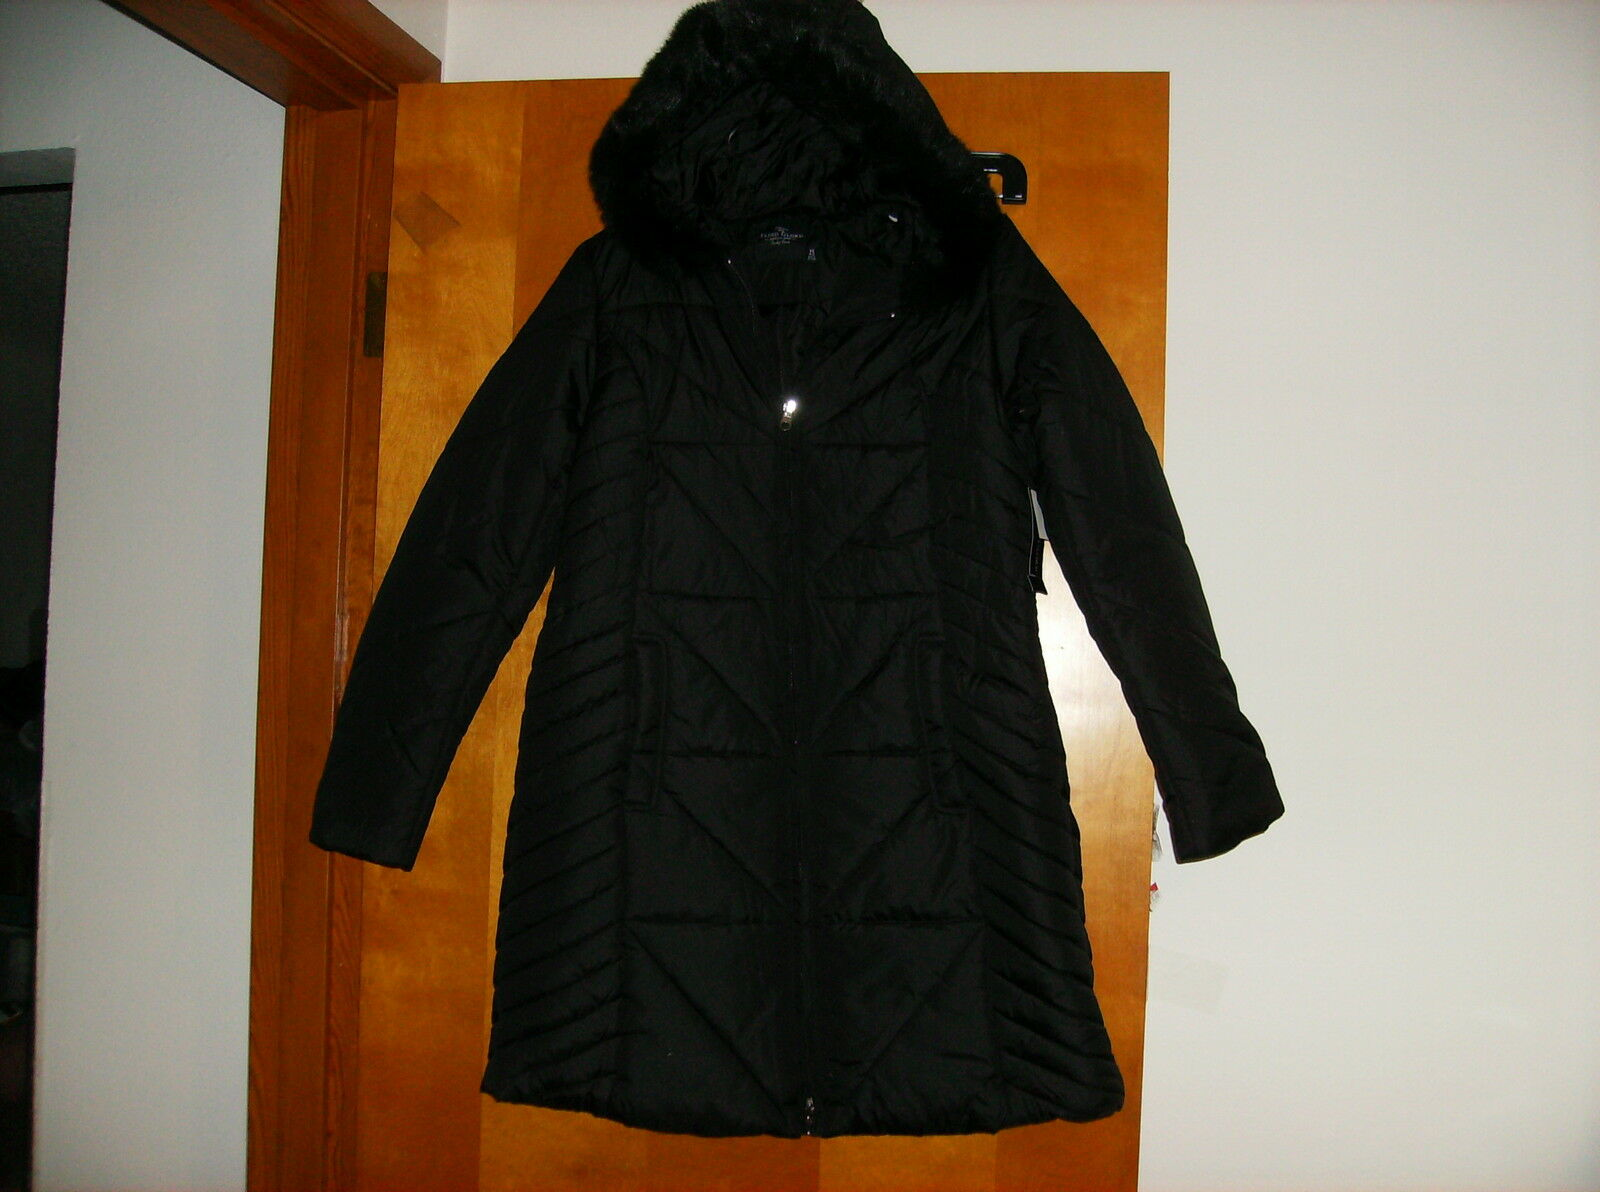 NEW LADY'S 3 4 LENGTH WINTER COAT w  ATTACHED FAUX FUR TRIMMED PARKA..sz..MEDIUM